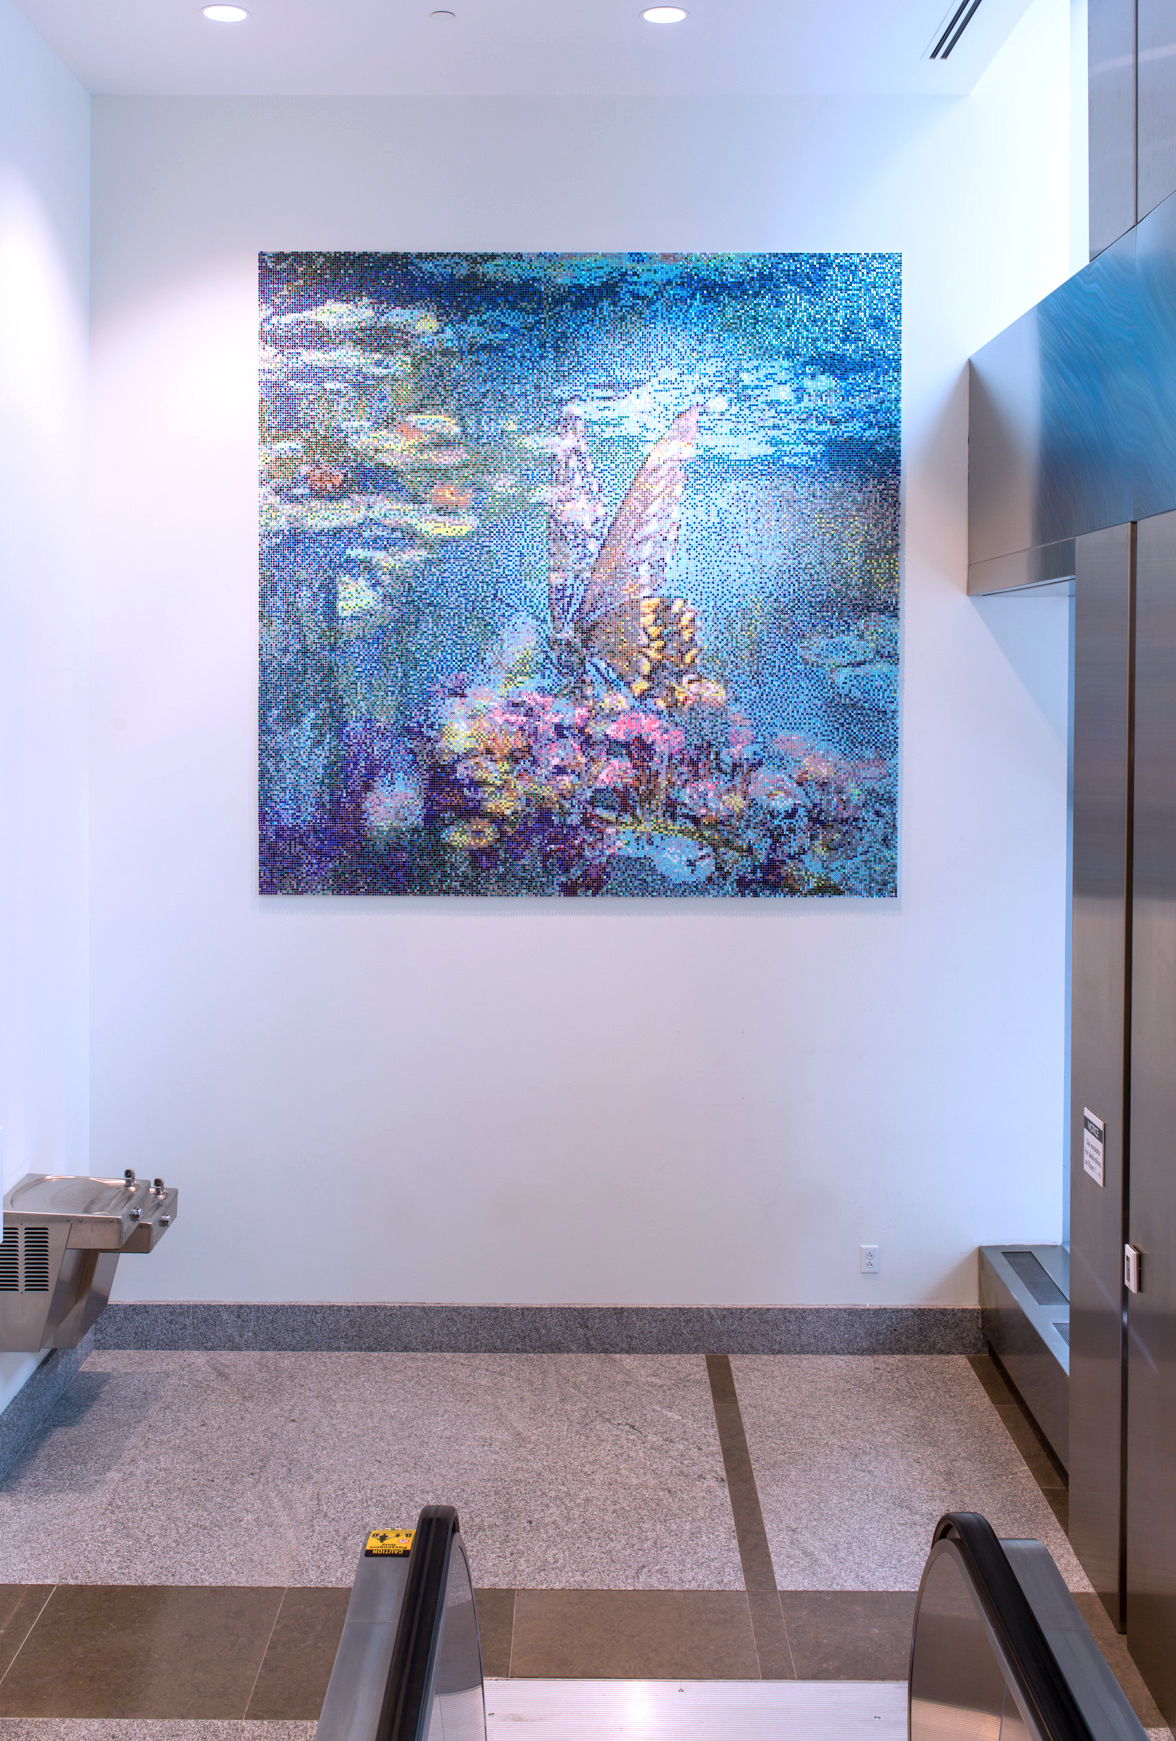 FAMILY COURT BUILDING, PHILADELPHIA  Soothing Monet-inspired lobby art